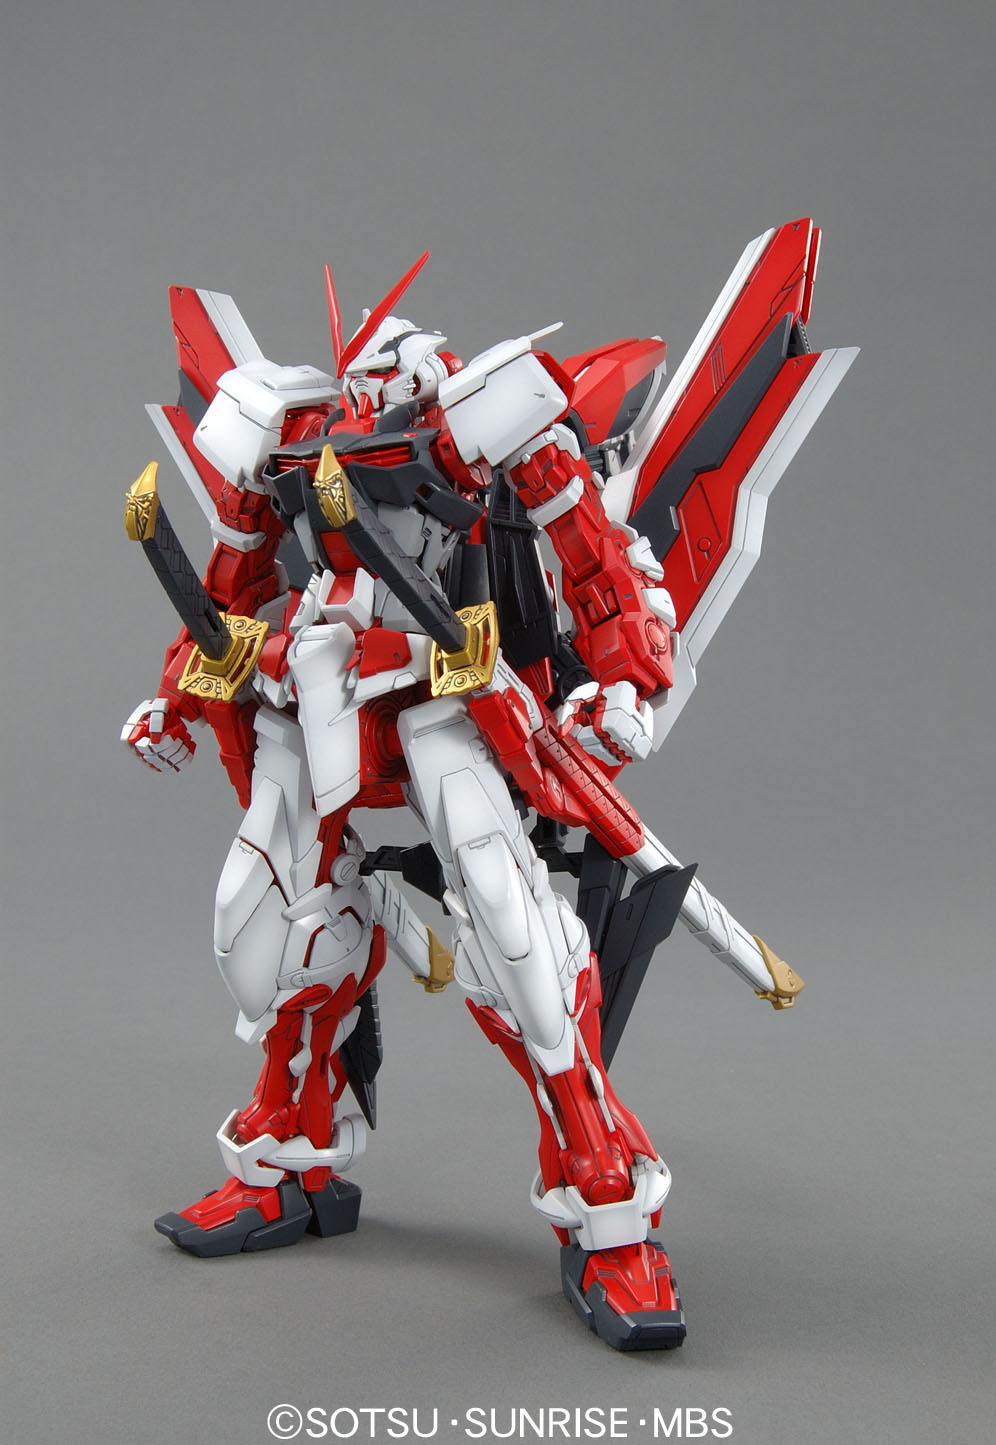 Bandai Gundam MG Original Red Japan Anime Action Toy Figures Christmas Gift Assemble Model Robot Children Collection HGD-162047 цена и фото